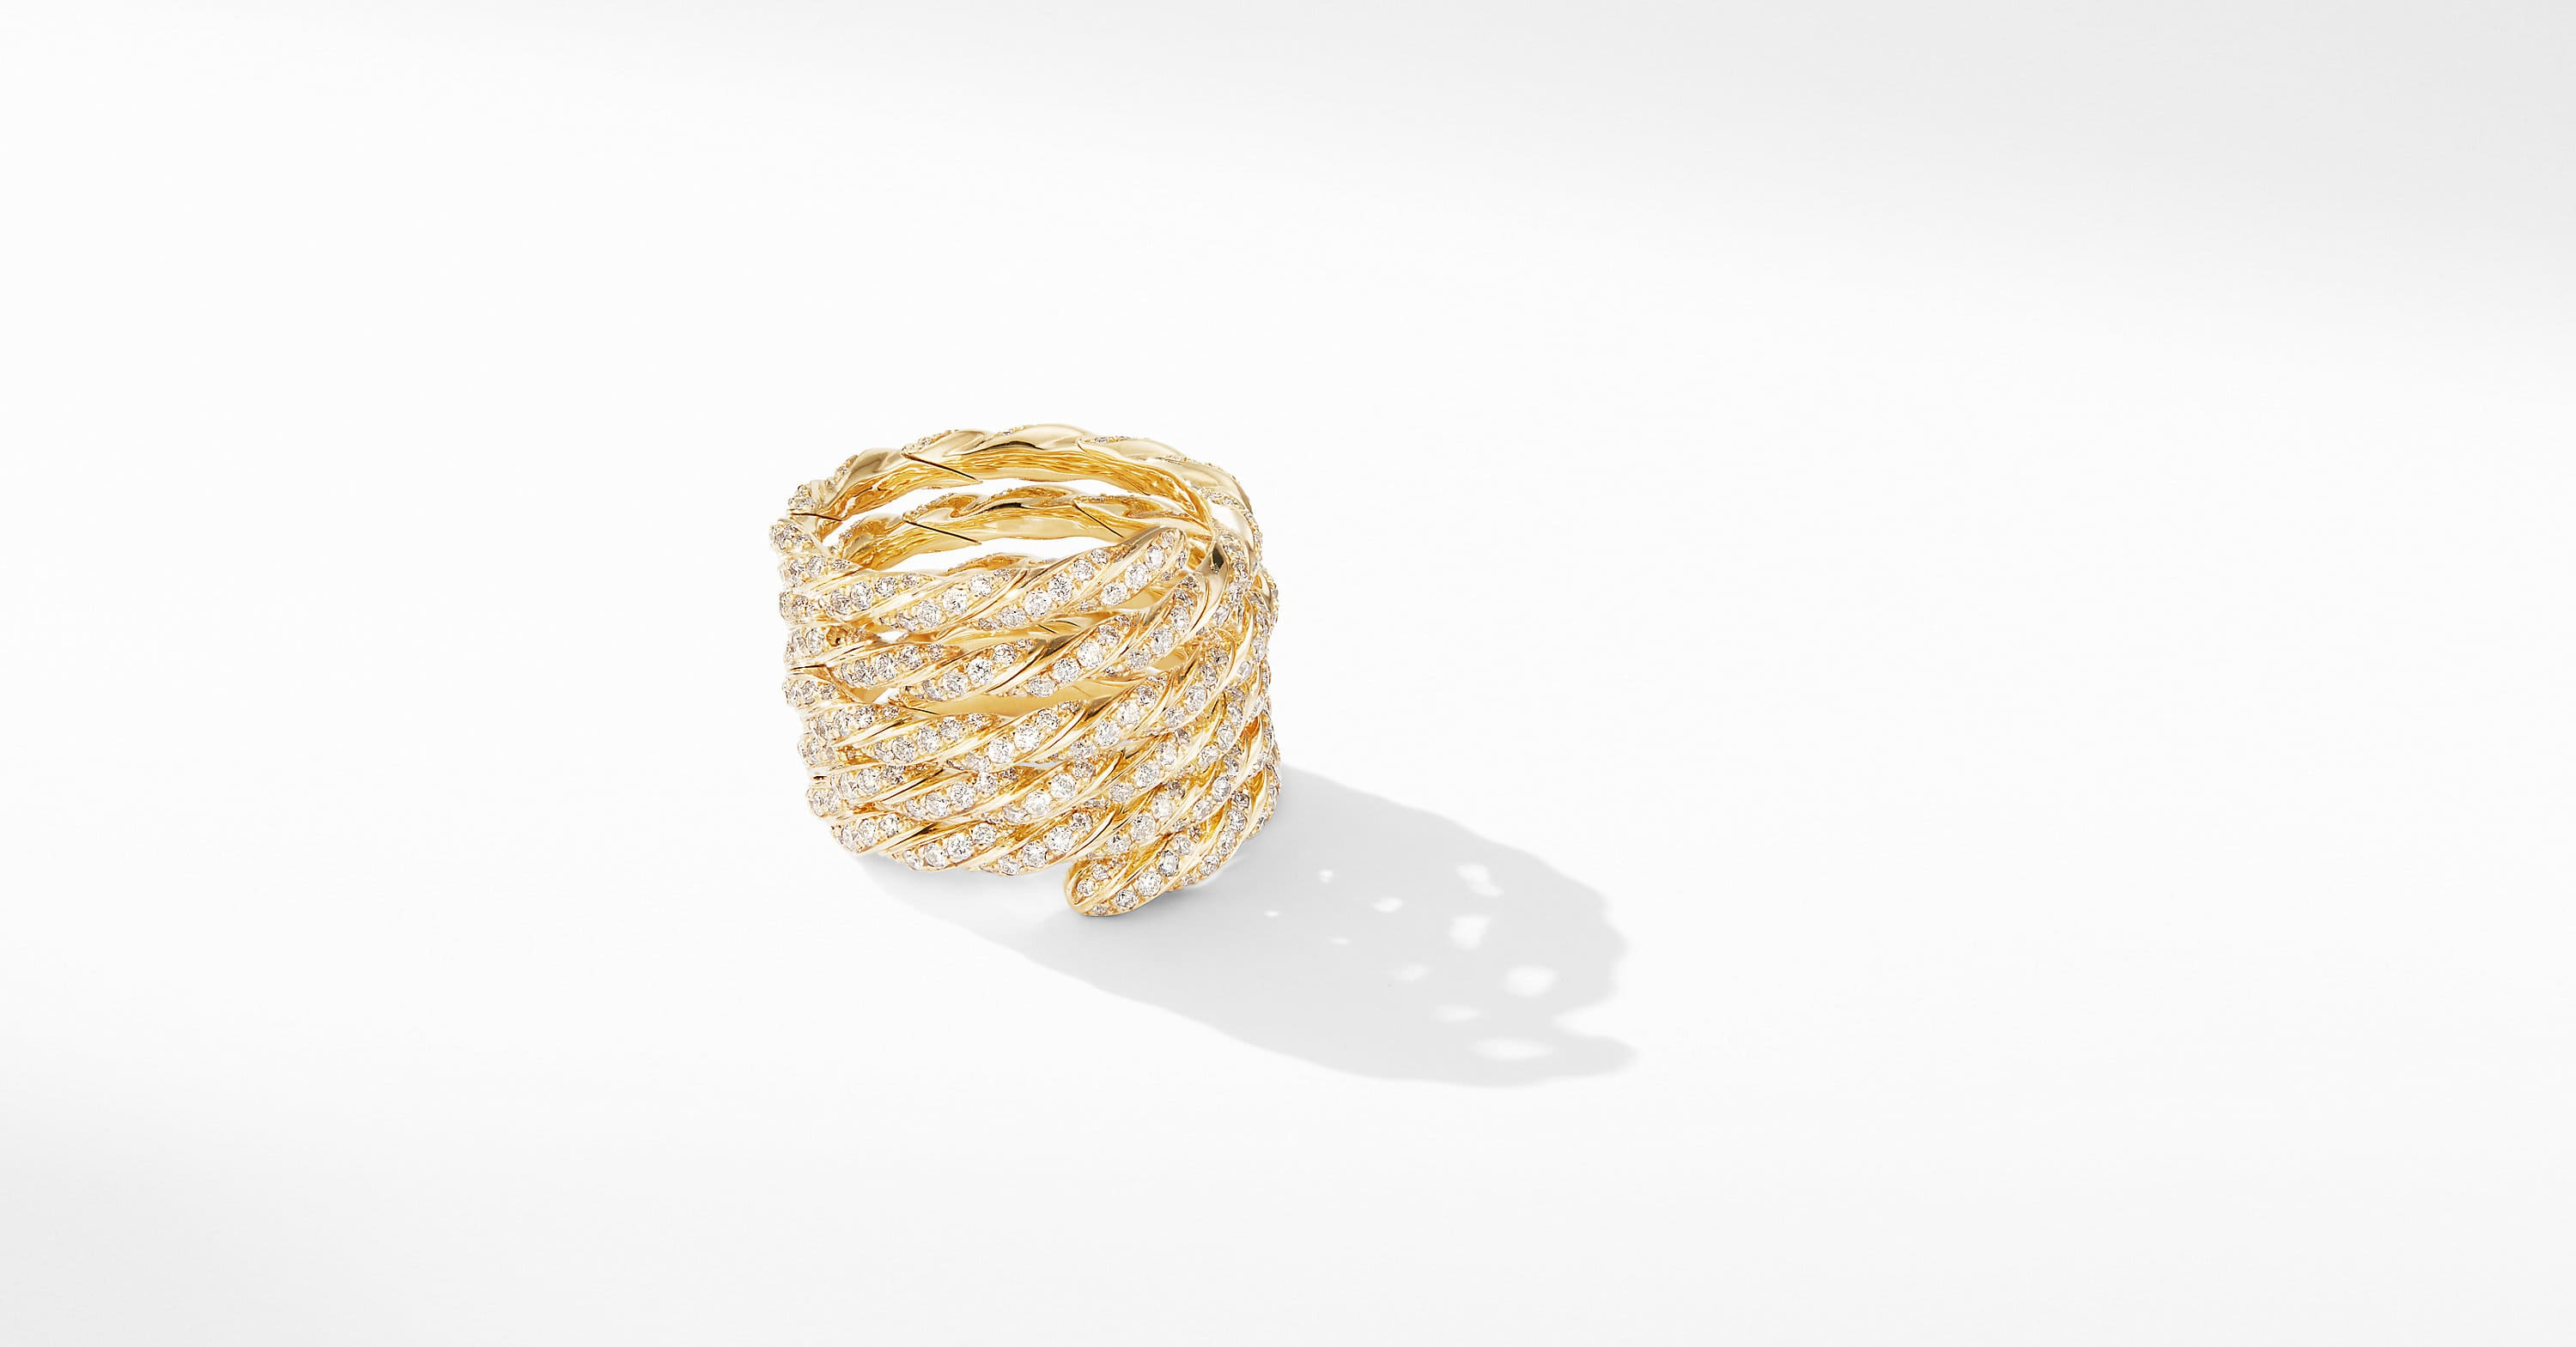 Paveflex Coil Ring in 18K Yellow Gold with Diamonds